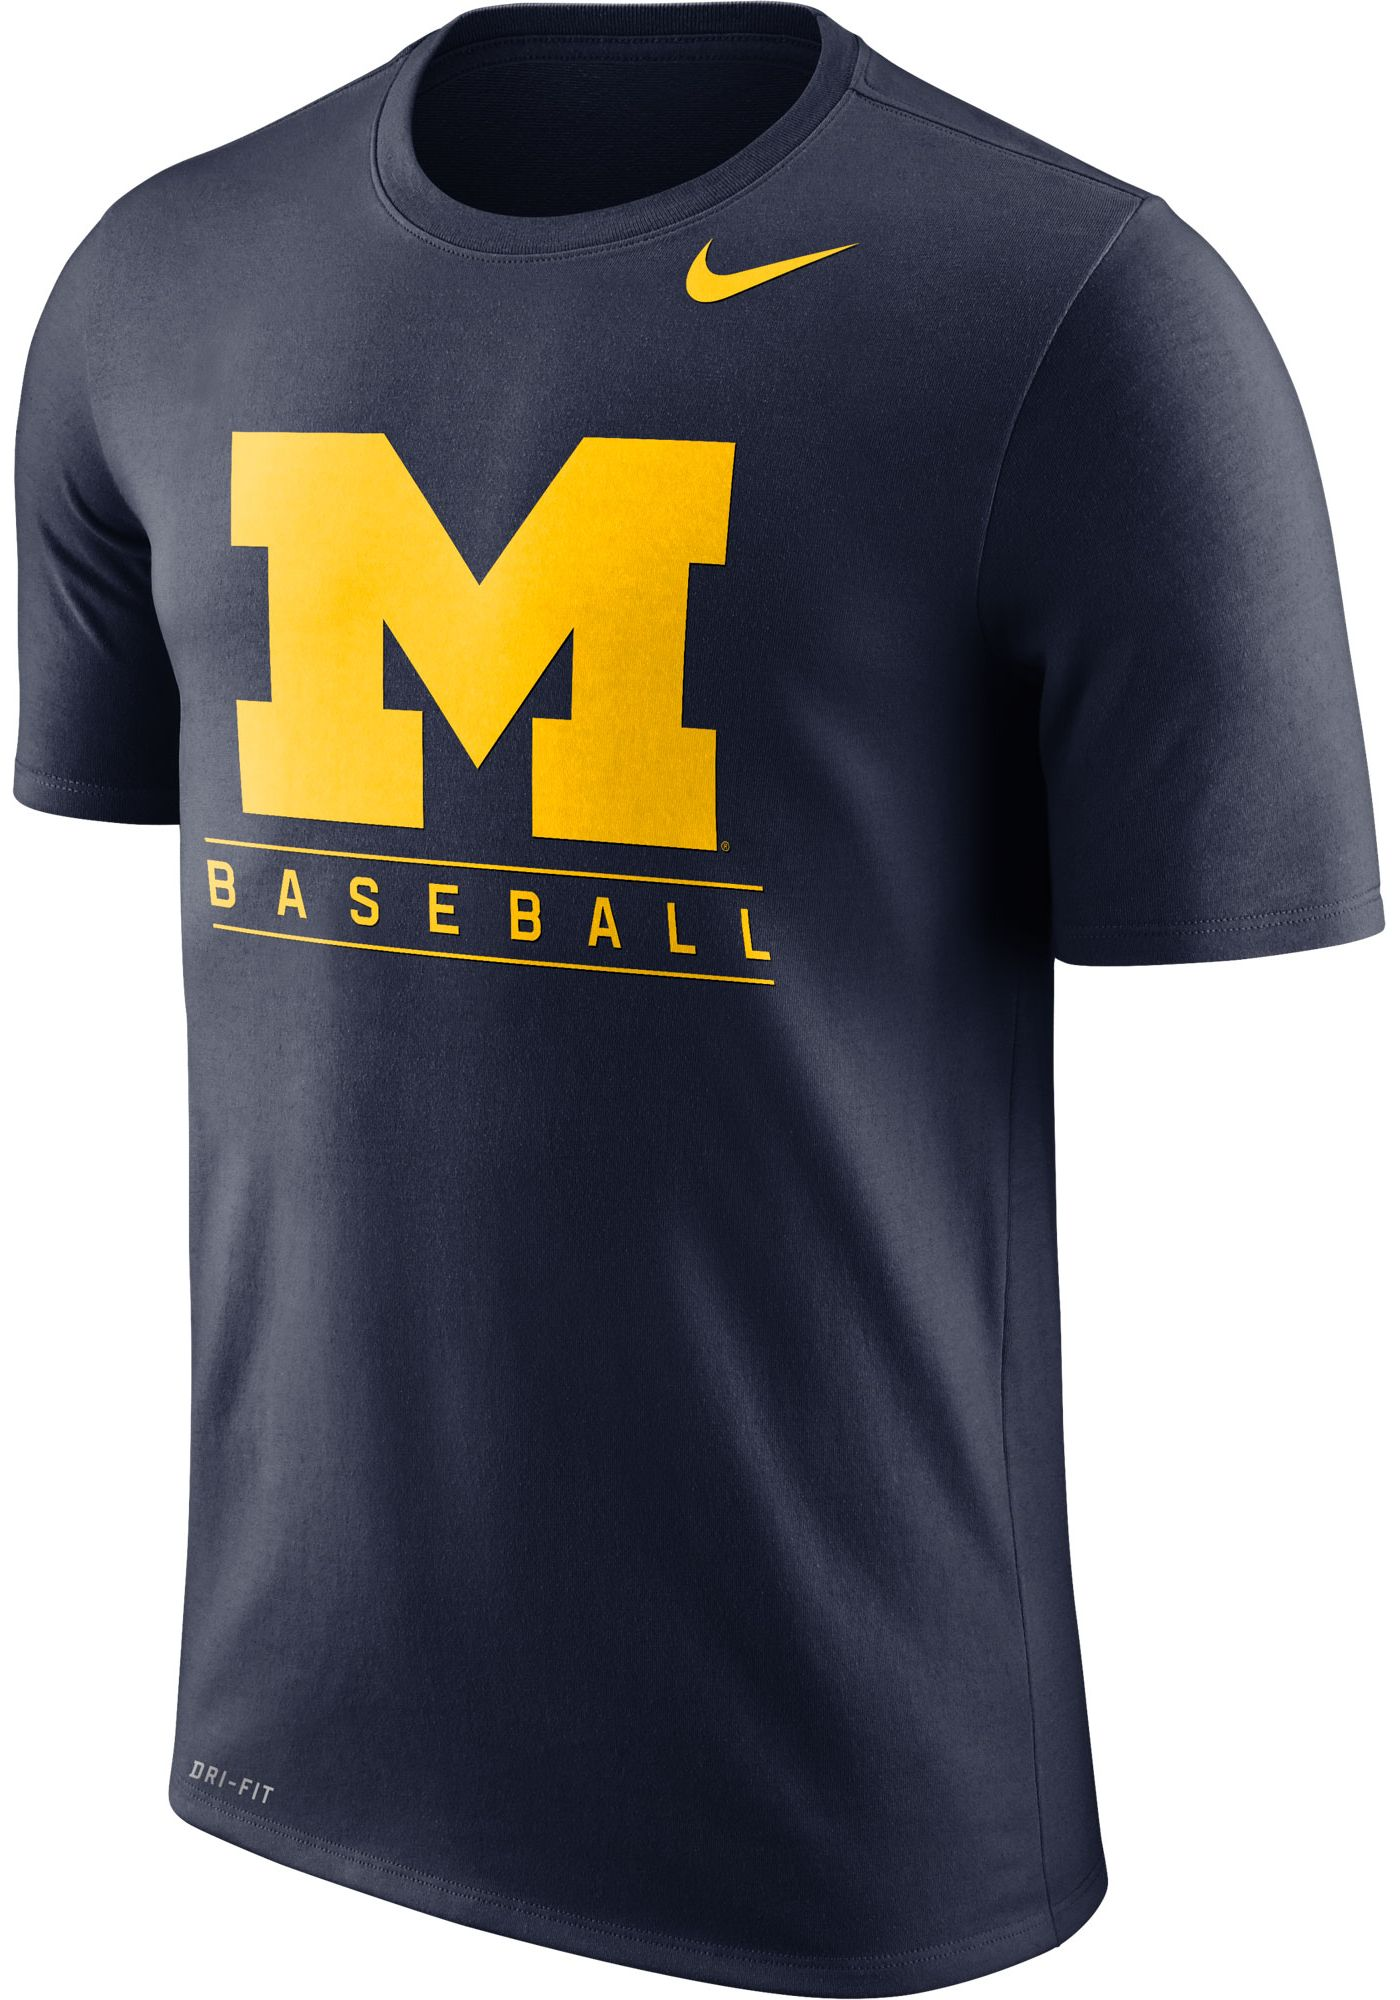 Nike Men's Michigan Wolverines Blue Dri-FIT Legend Baseball T-Shirt